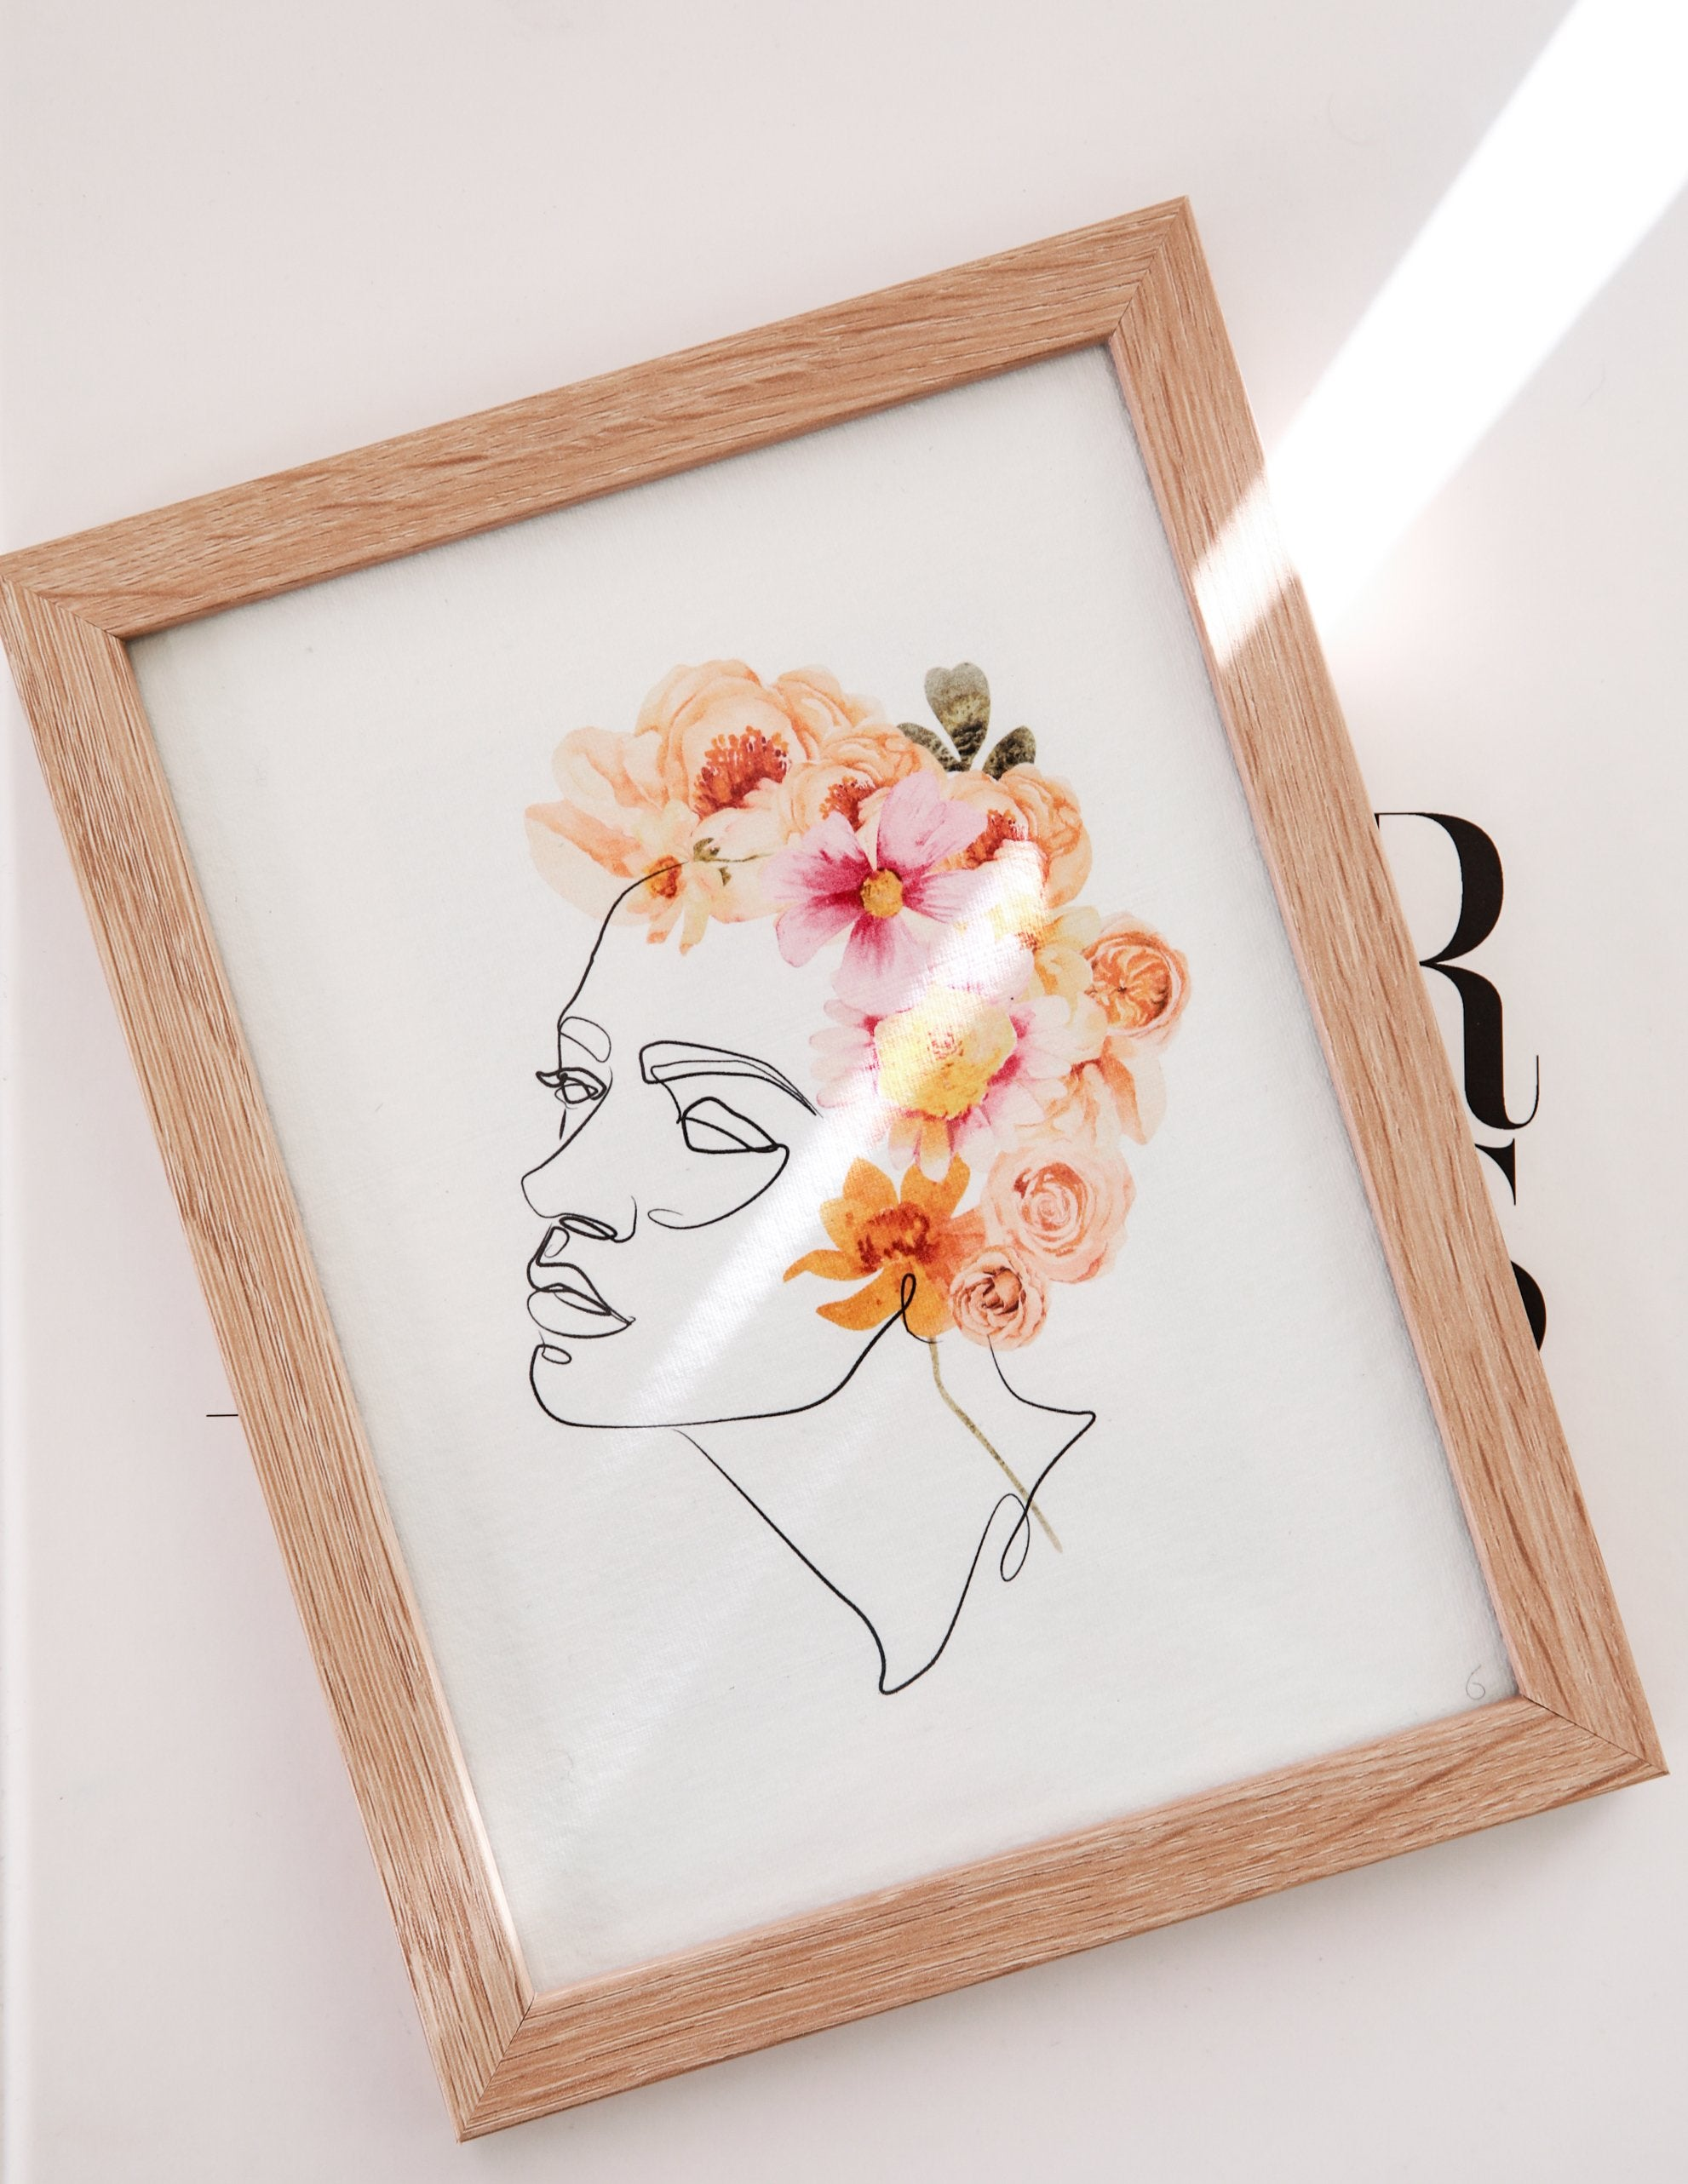 Female Portrait line art and Floral Wreath - Feathers and Stone